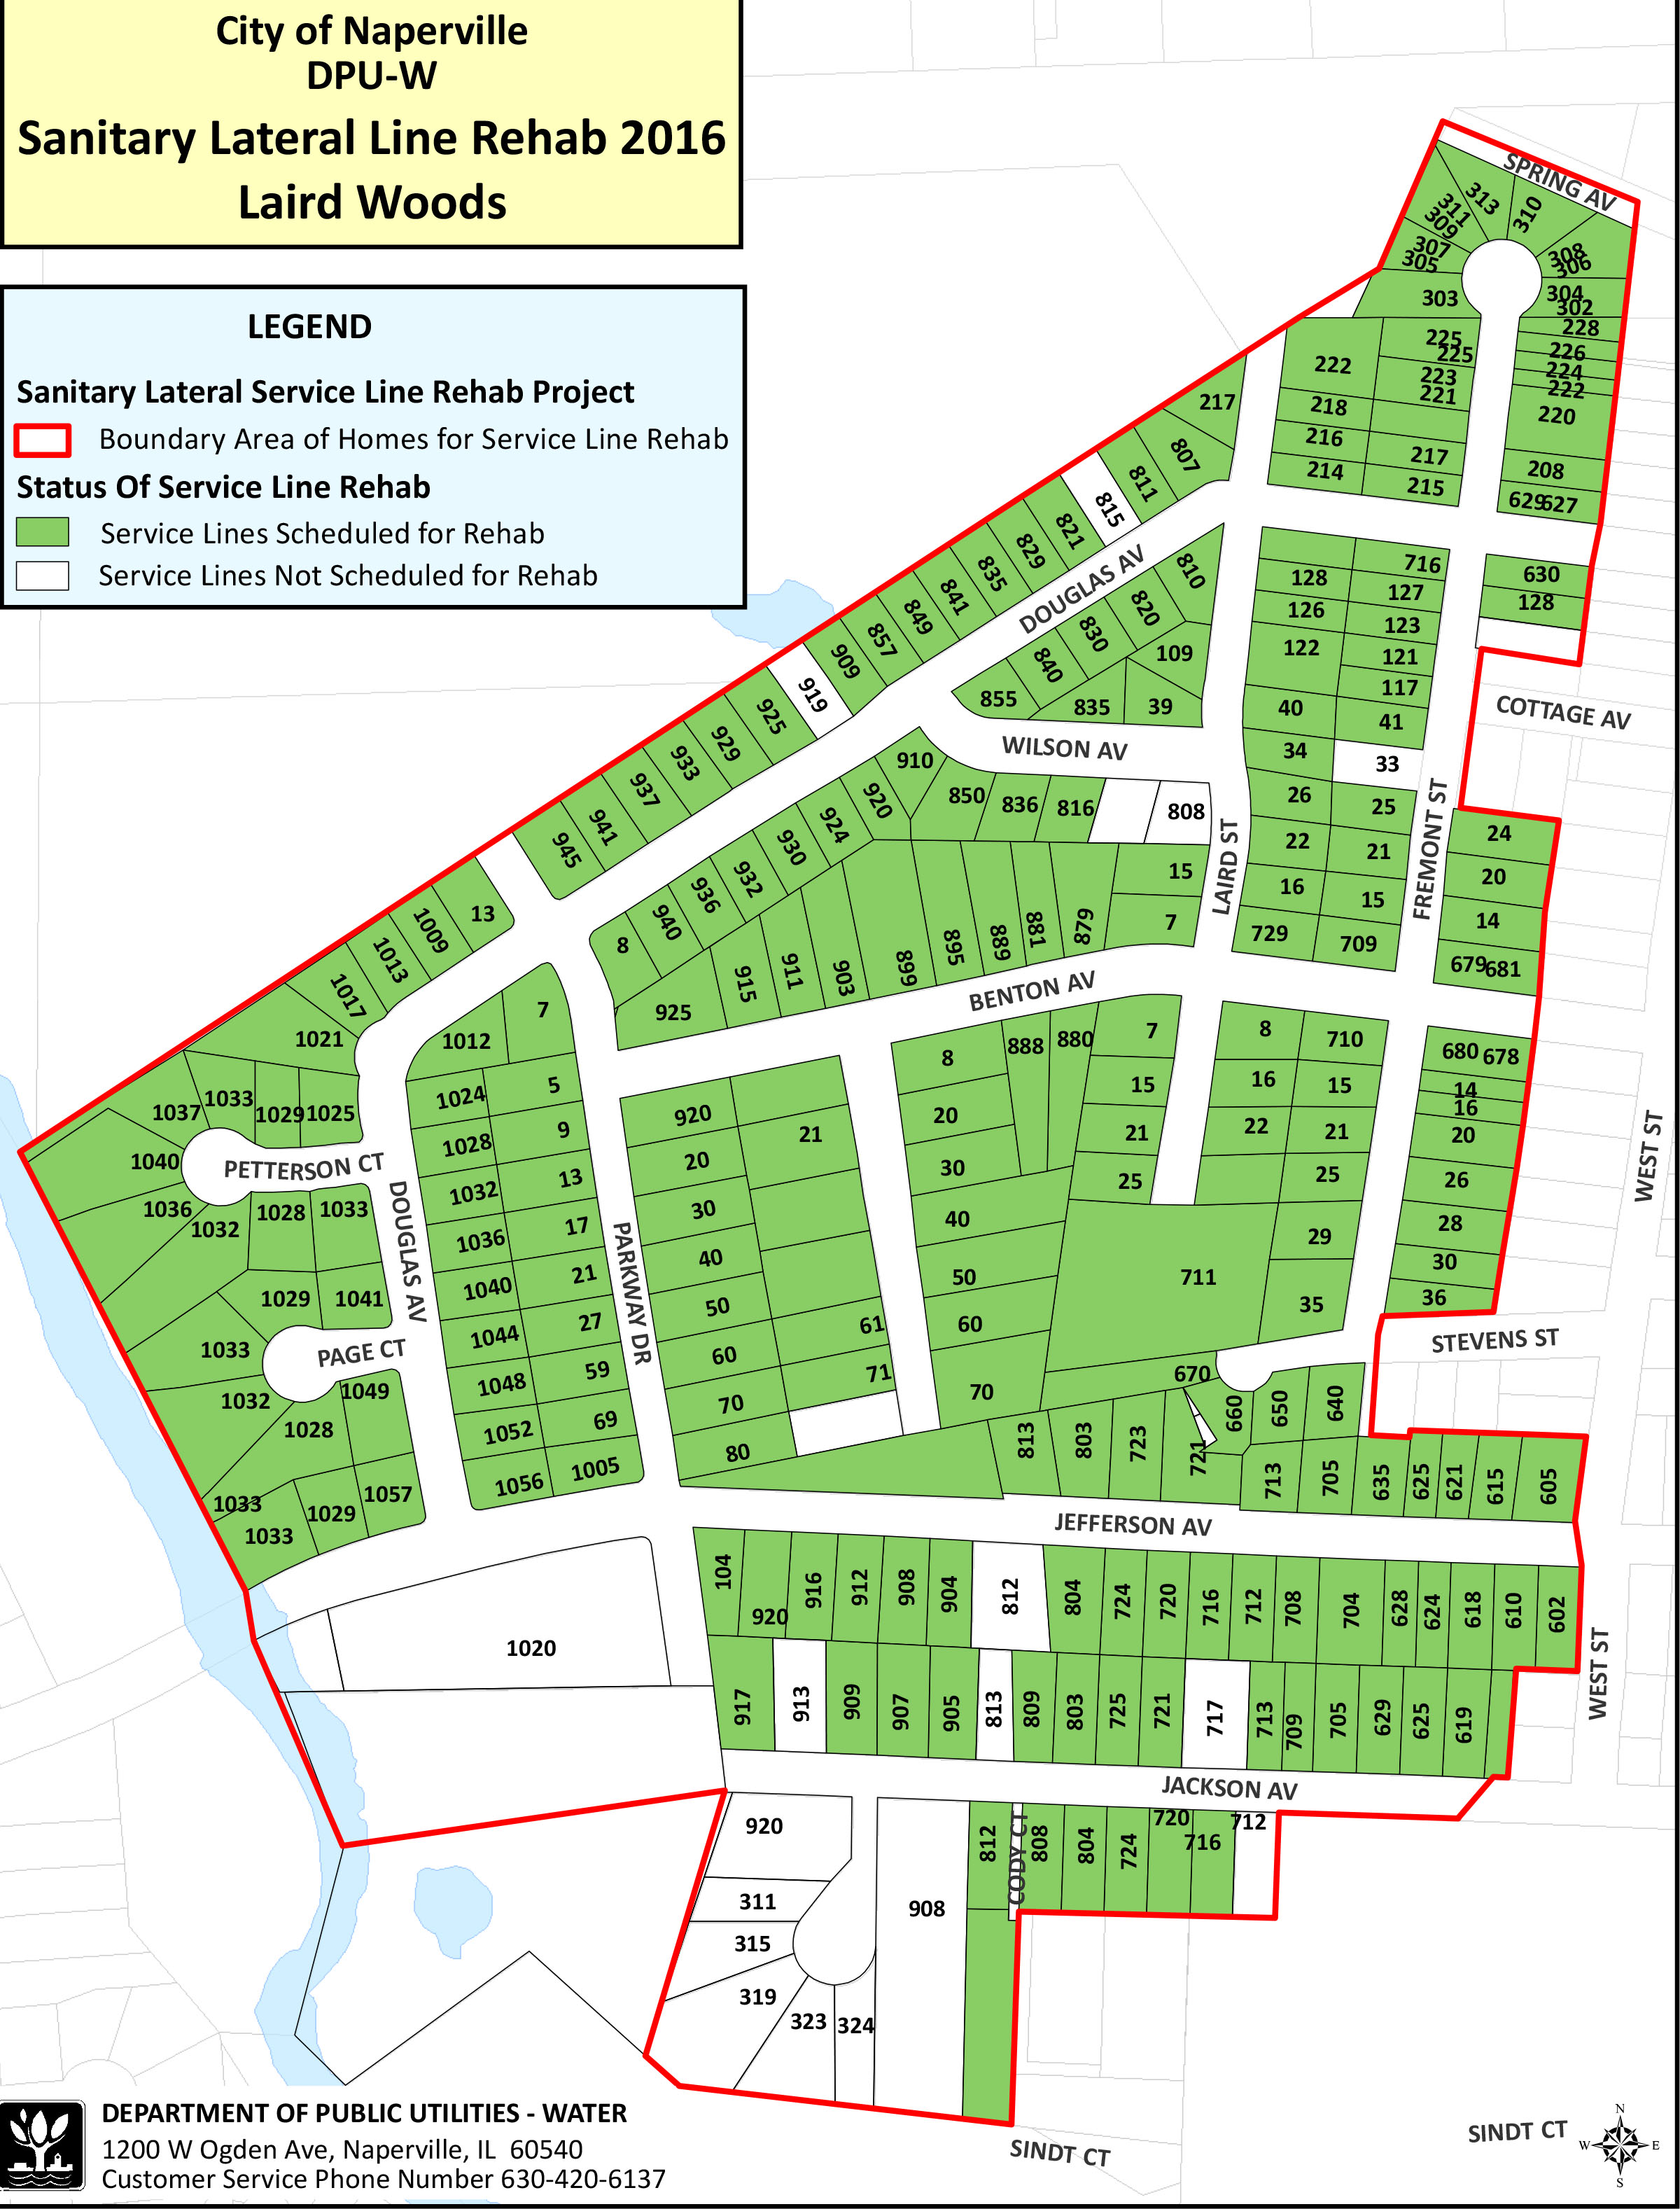 Residential sanitary sewer lining program the city of for Residential sewer systems